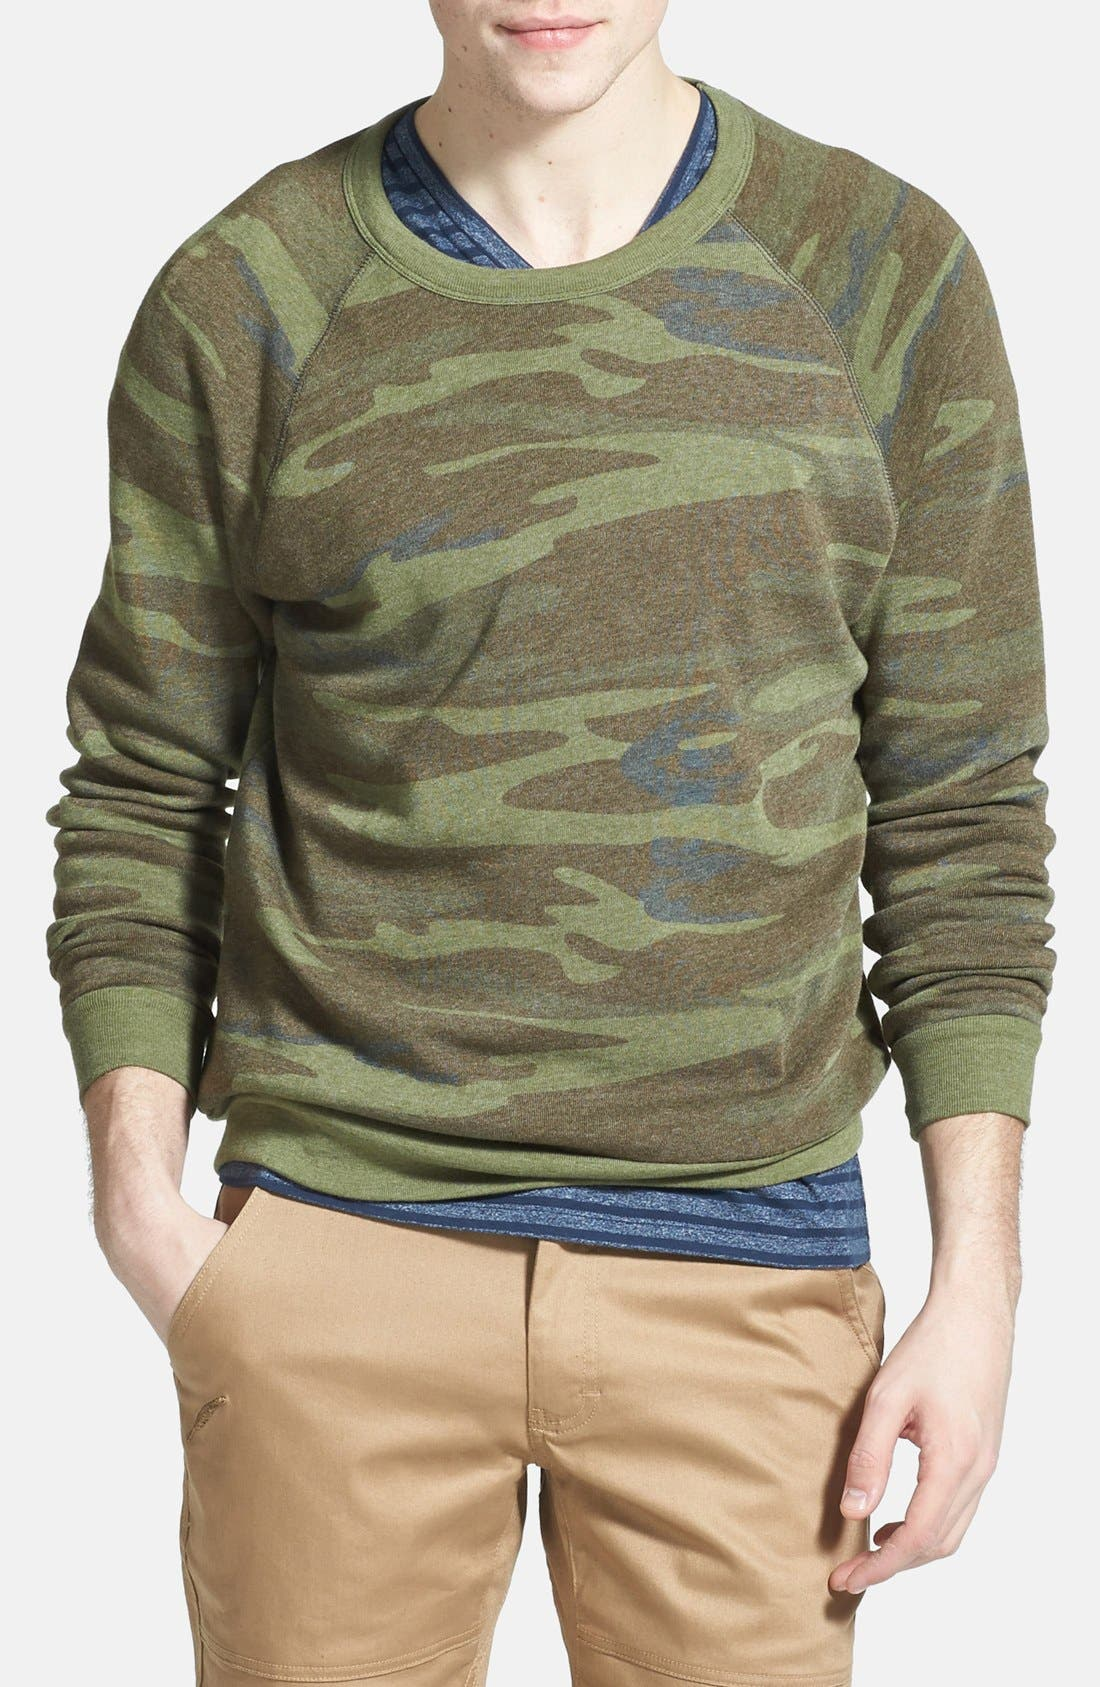 Alternate Image 1 Selected - Alternative 'The Champ' Camo Print Crewneck Sweatshirt